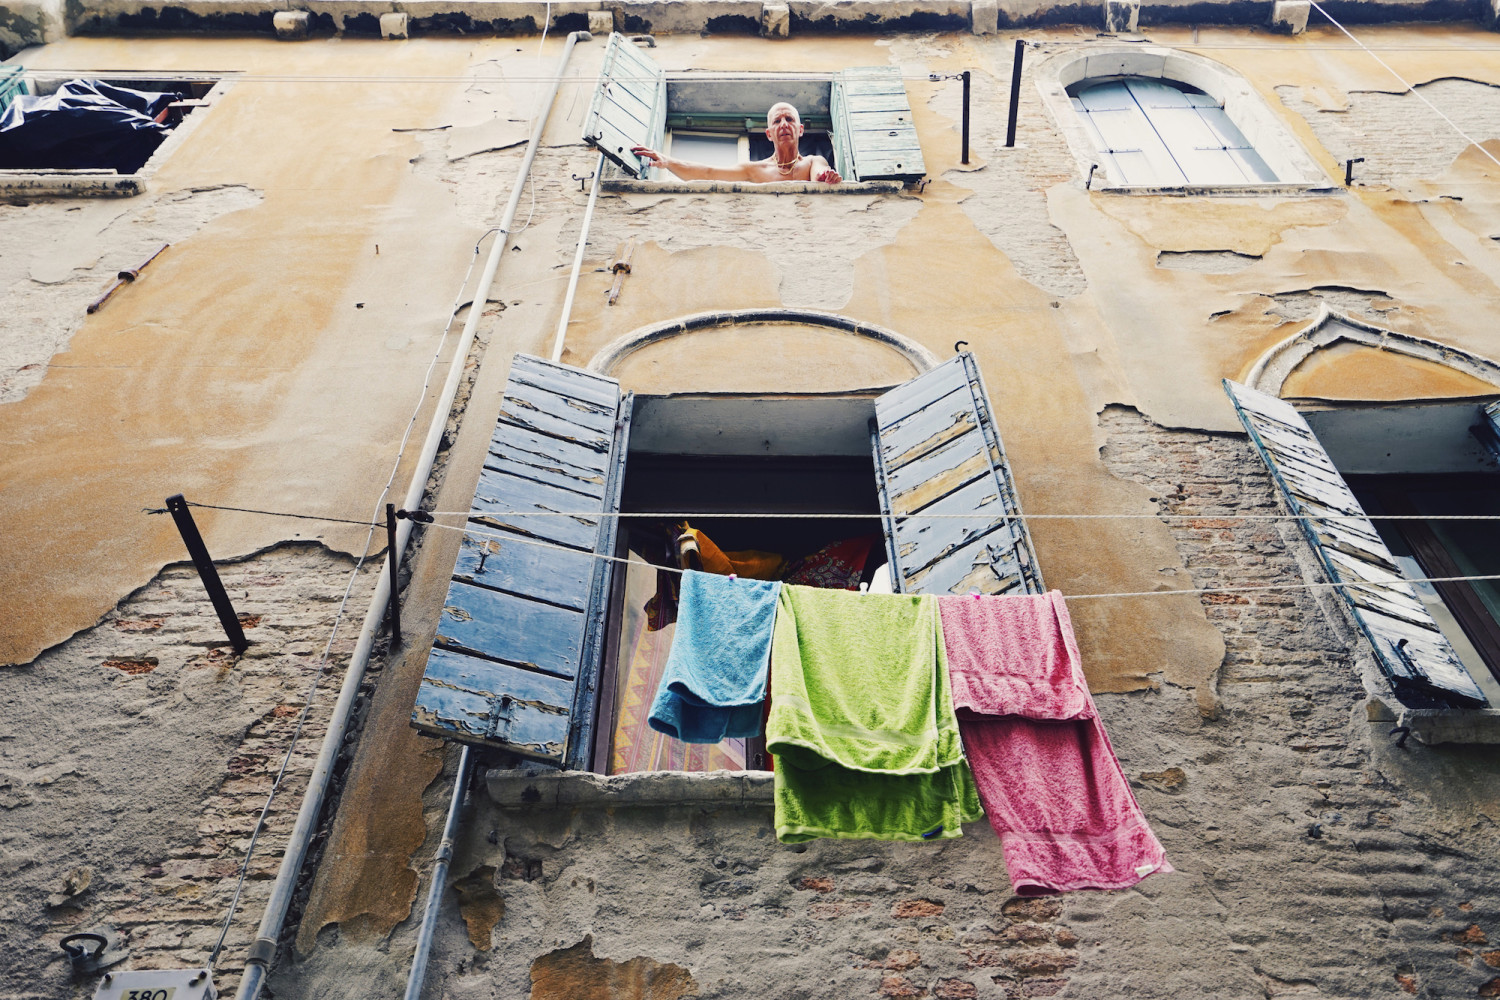 venice-fresh-laundry-dante-vincent-photography